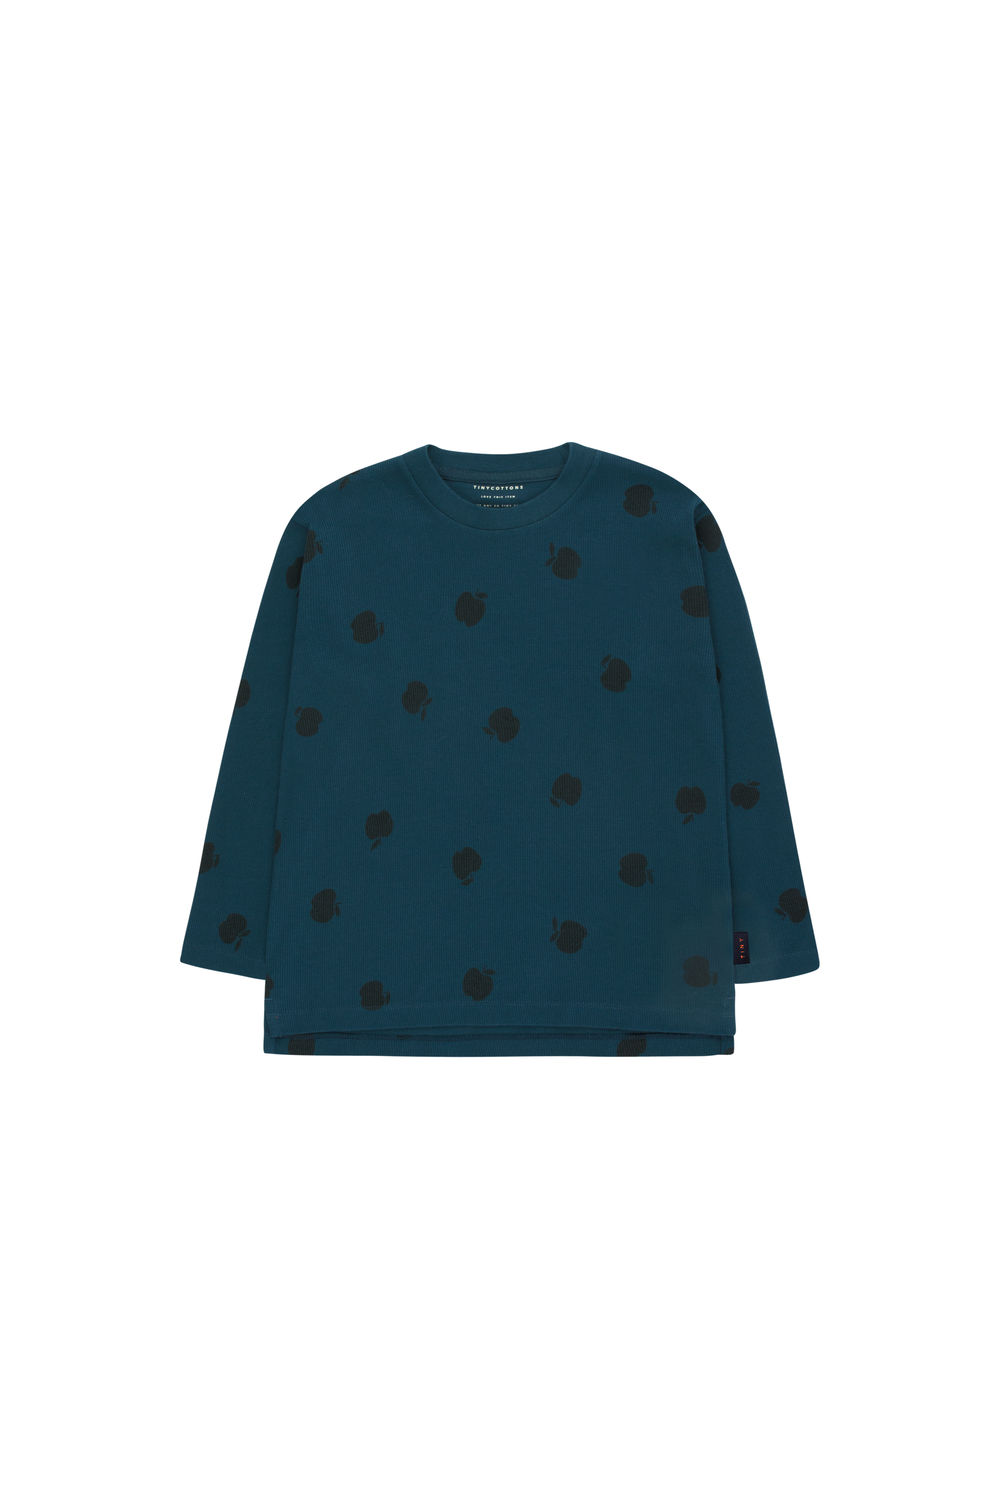 TINY COTTONS APPLES TEE, NAVY